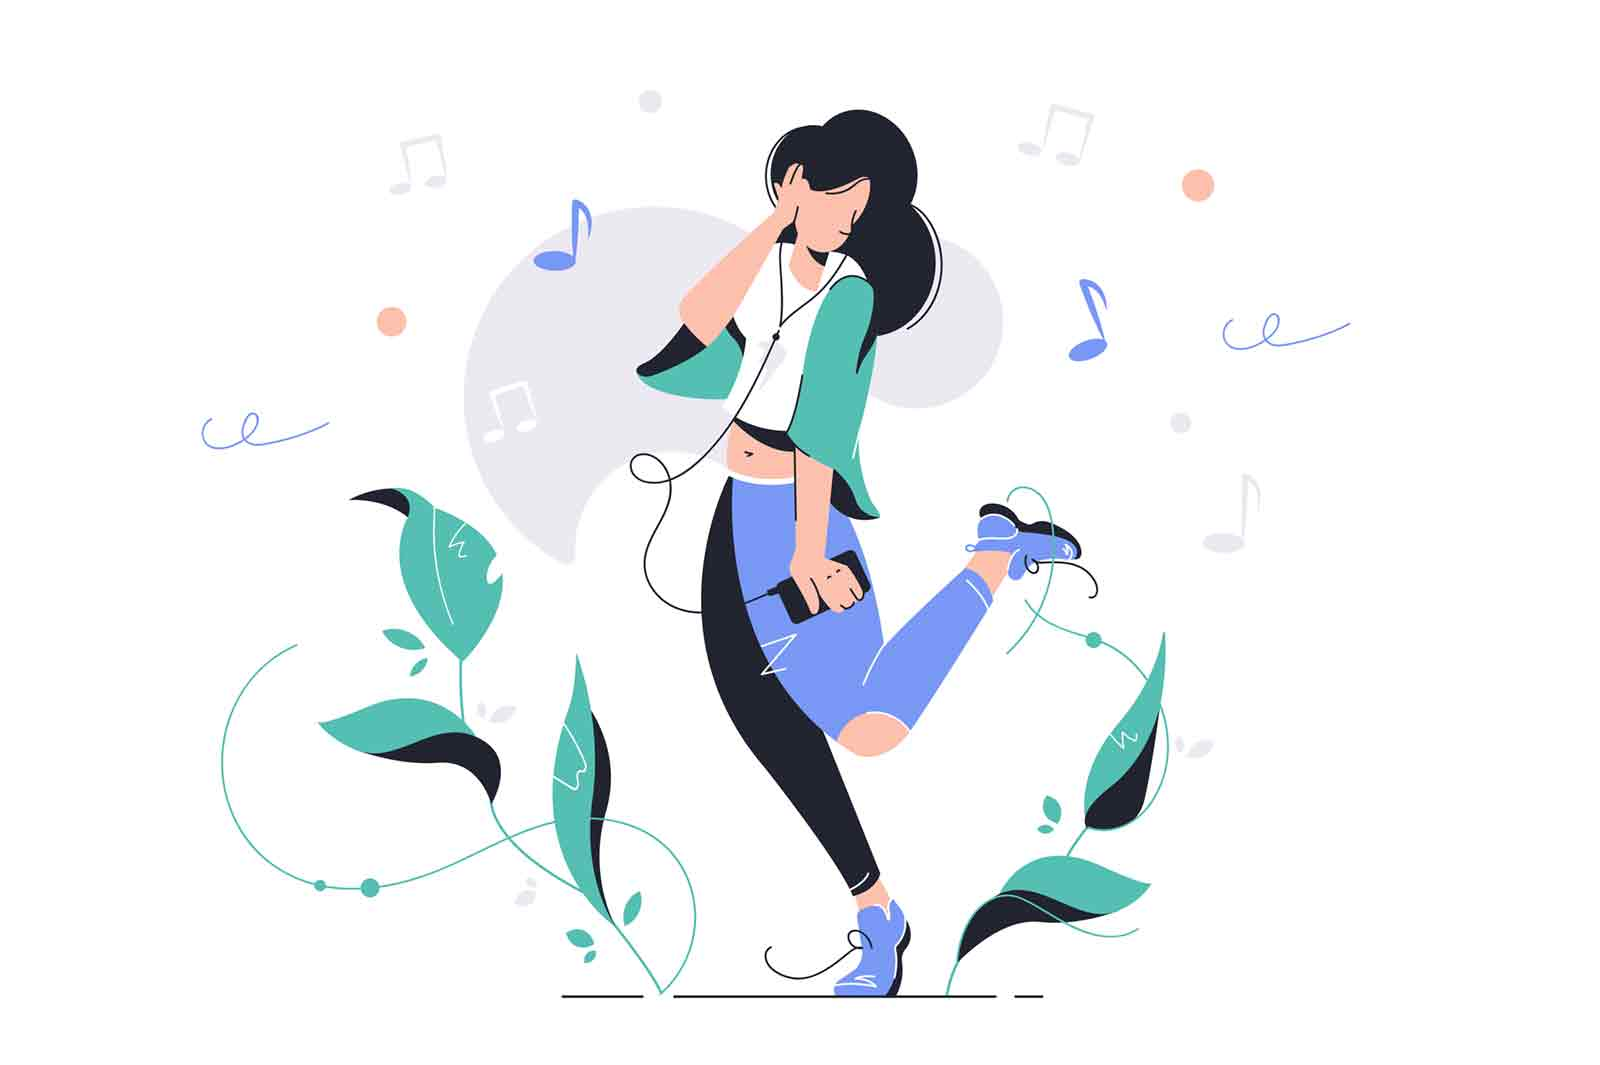 Girl dancing on street outdoors vector illustration. Woman listening to music and wearing headset flat style. Outside activity and player. Fun and entertainment concept. Isolated on white